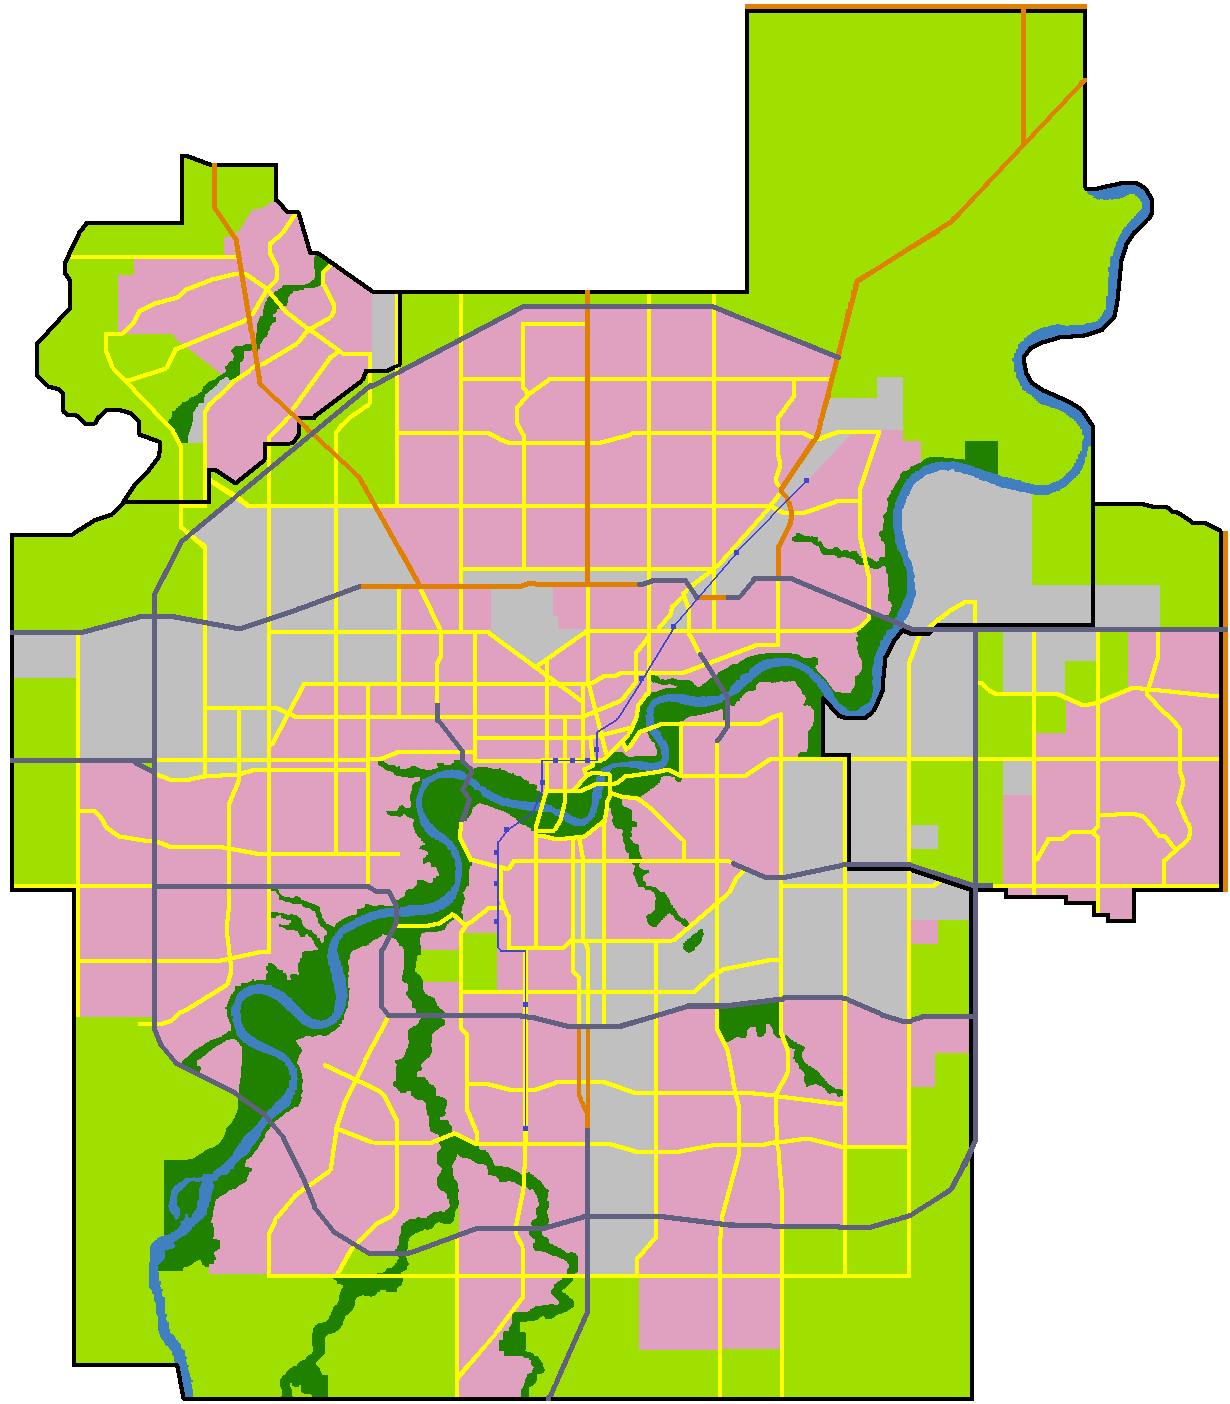 map edmonton alberta canada with List Of Neighbourhoods In Edmonton on List of neighbourhoods in Edmonton also Alberta as well Canada Capital Cities Of Provinces Wine Regions And Food Ethic Influences in addition Areacodes in addition royalalbertamuseum.